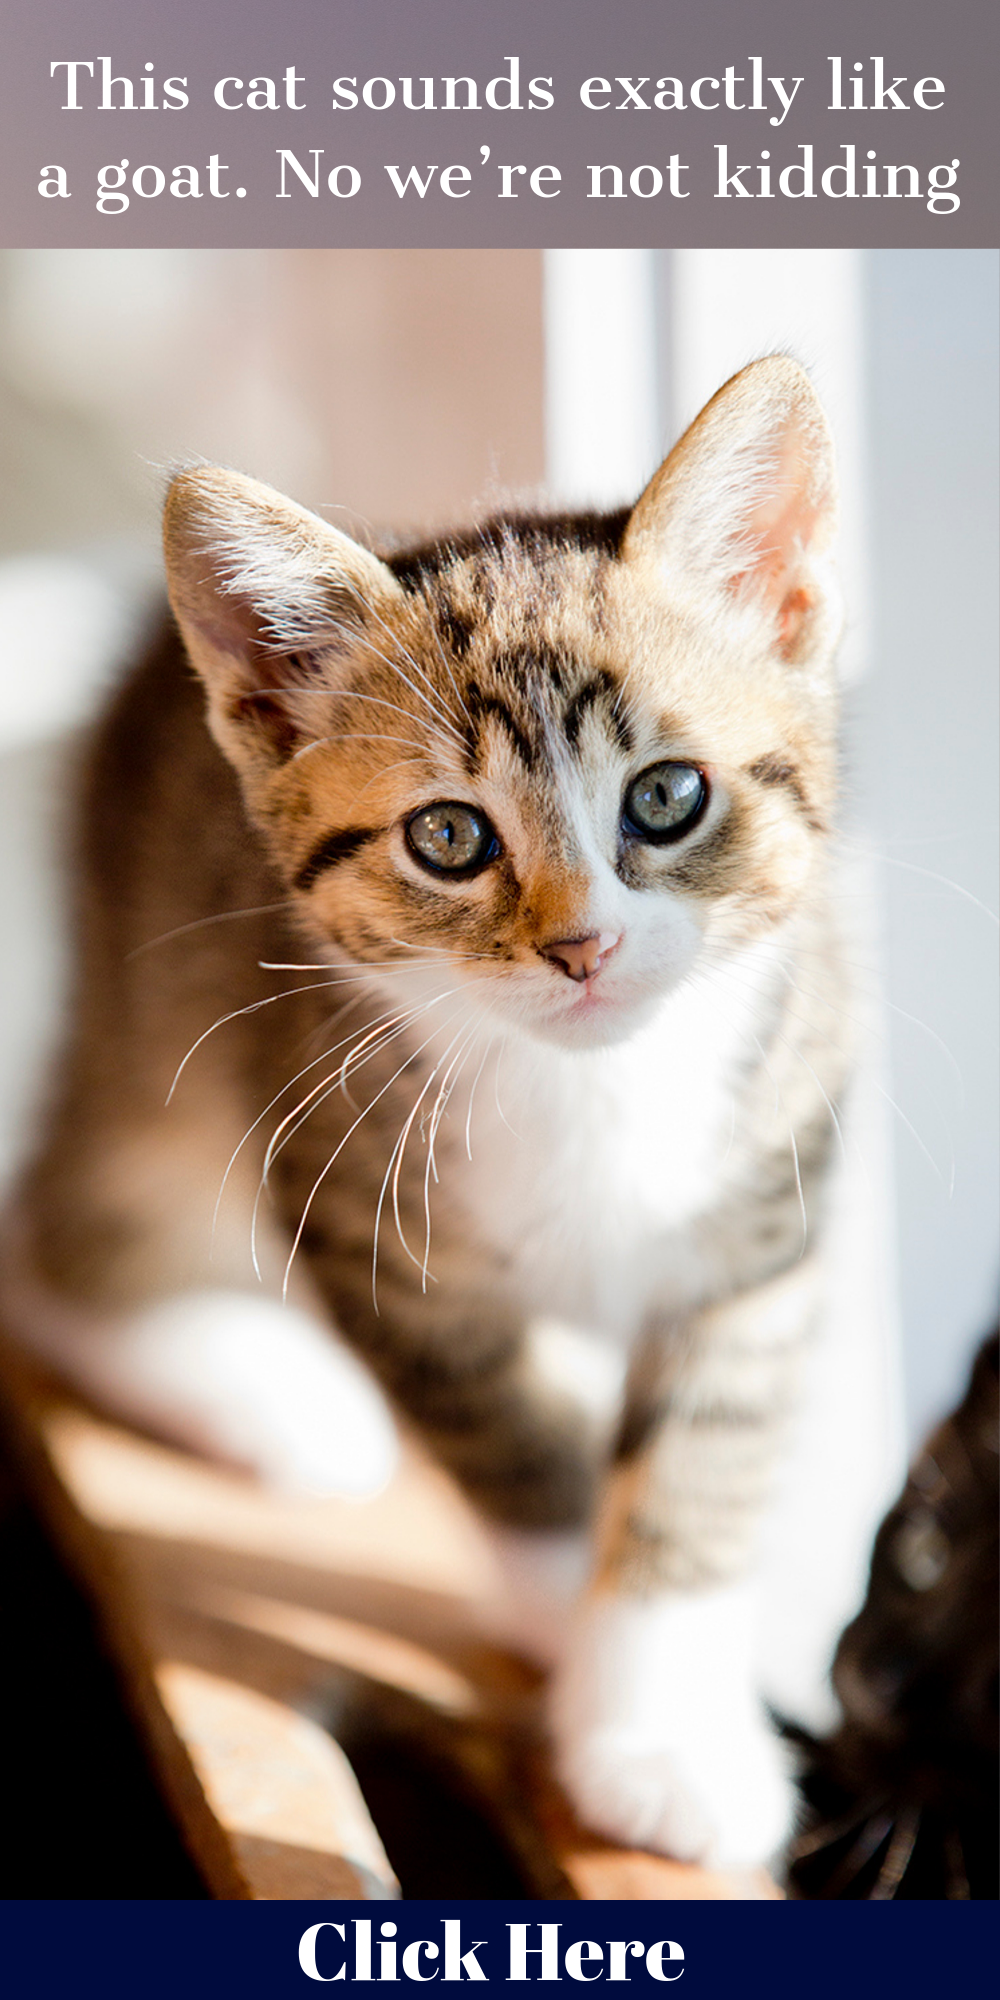 This cat sounds exactly like a goat. No we're not kidding